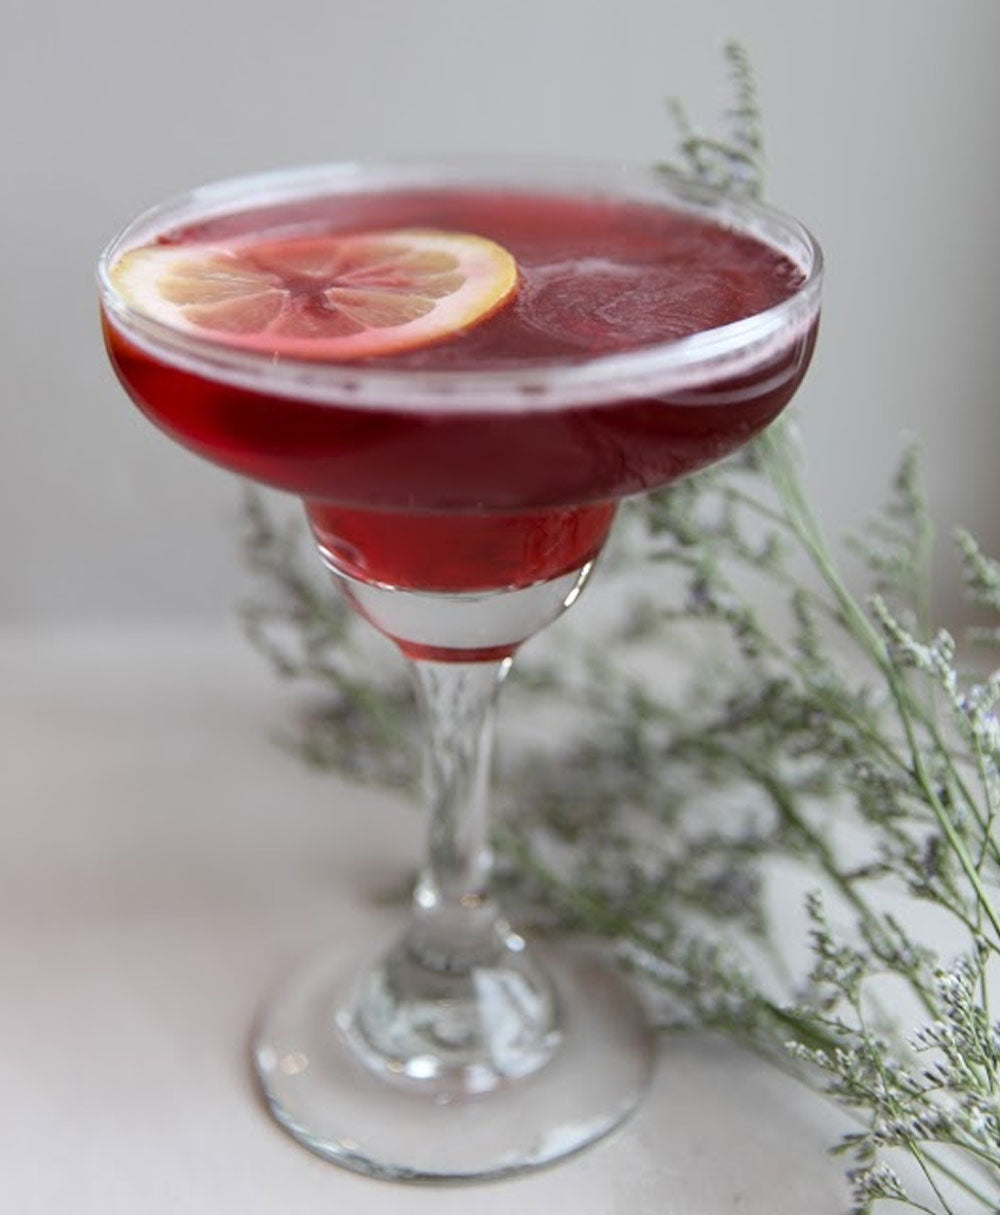 Jones Distilling - Vodka Blackberry Cocktail